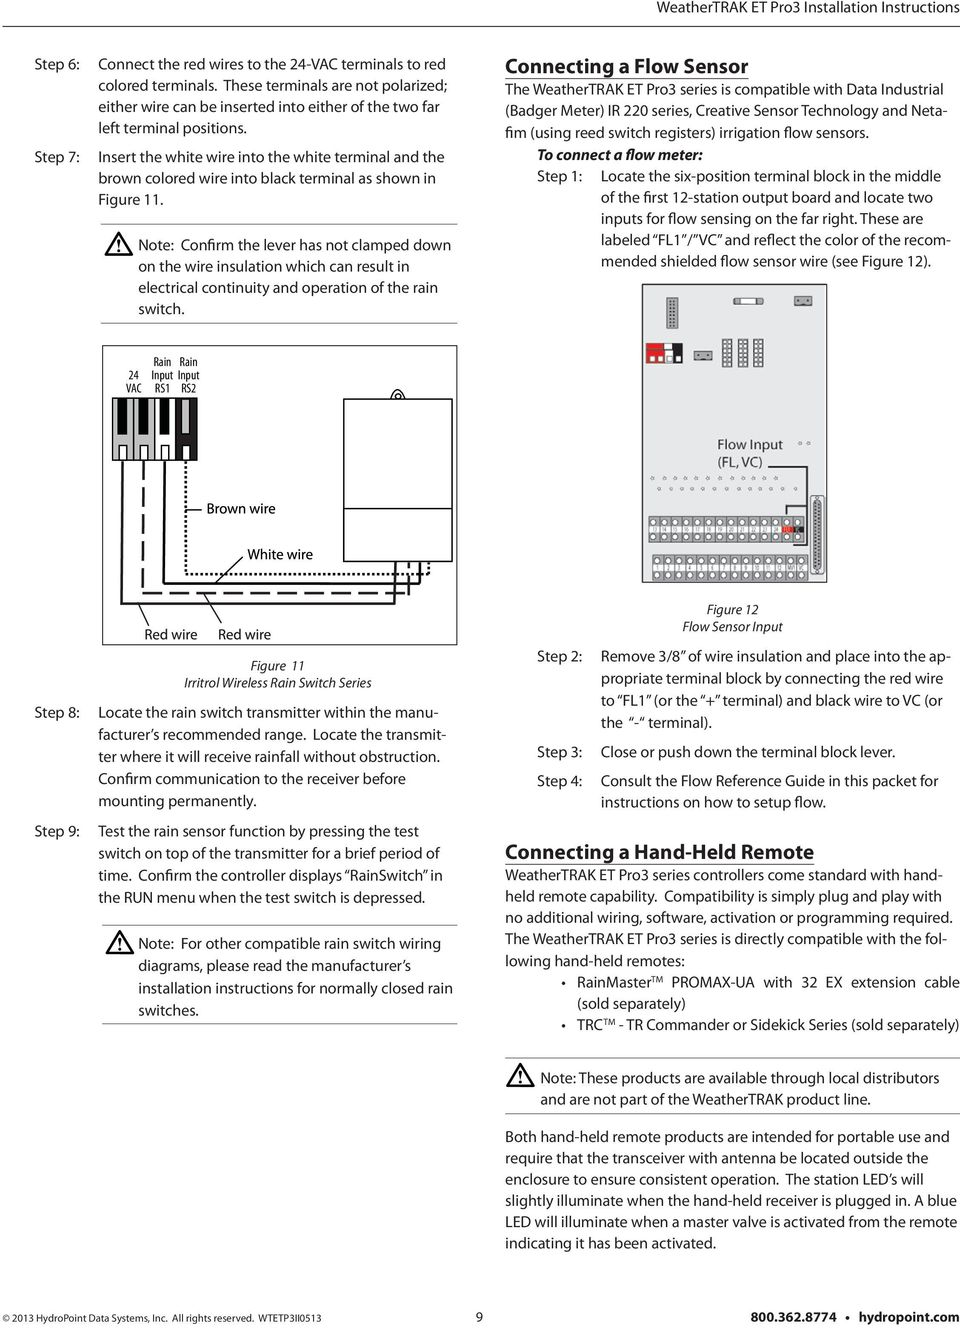 Getting Started Guide v1.1 - PDF on